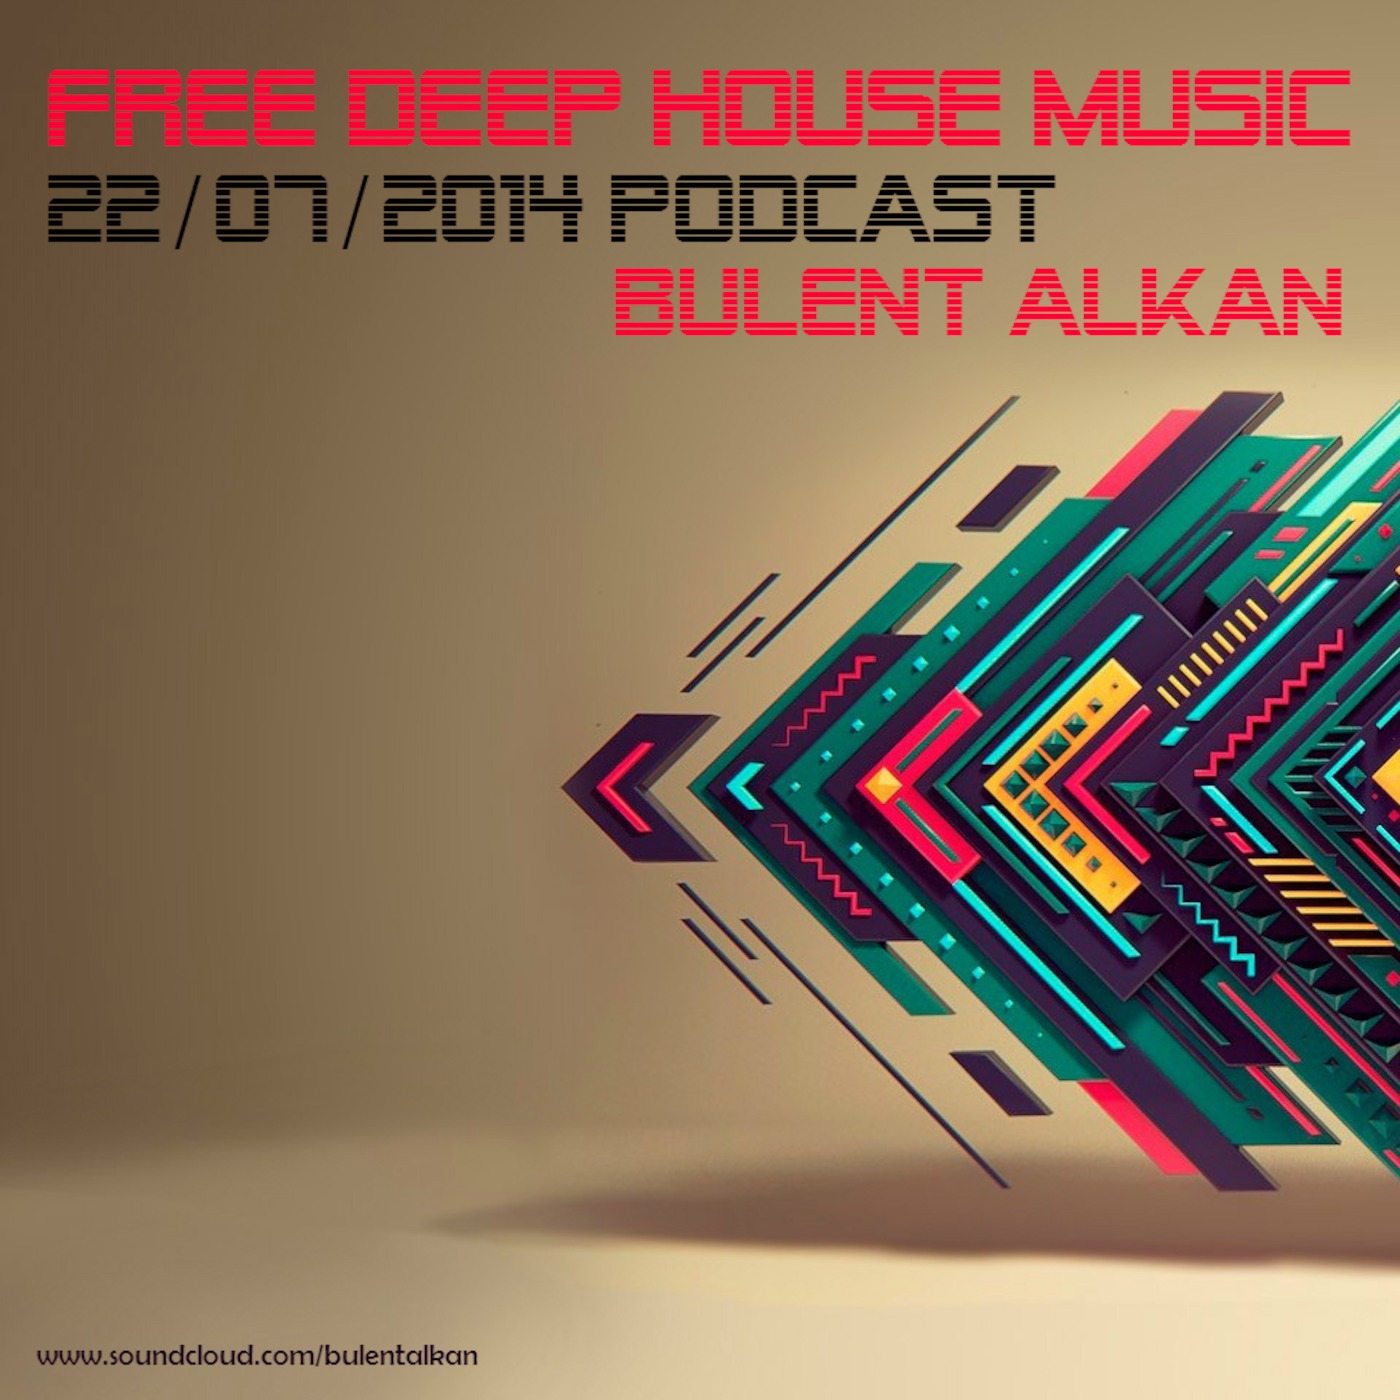 22/07/2014 PODCAST (FREE DEEP HOUSE MUSIC)